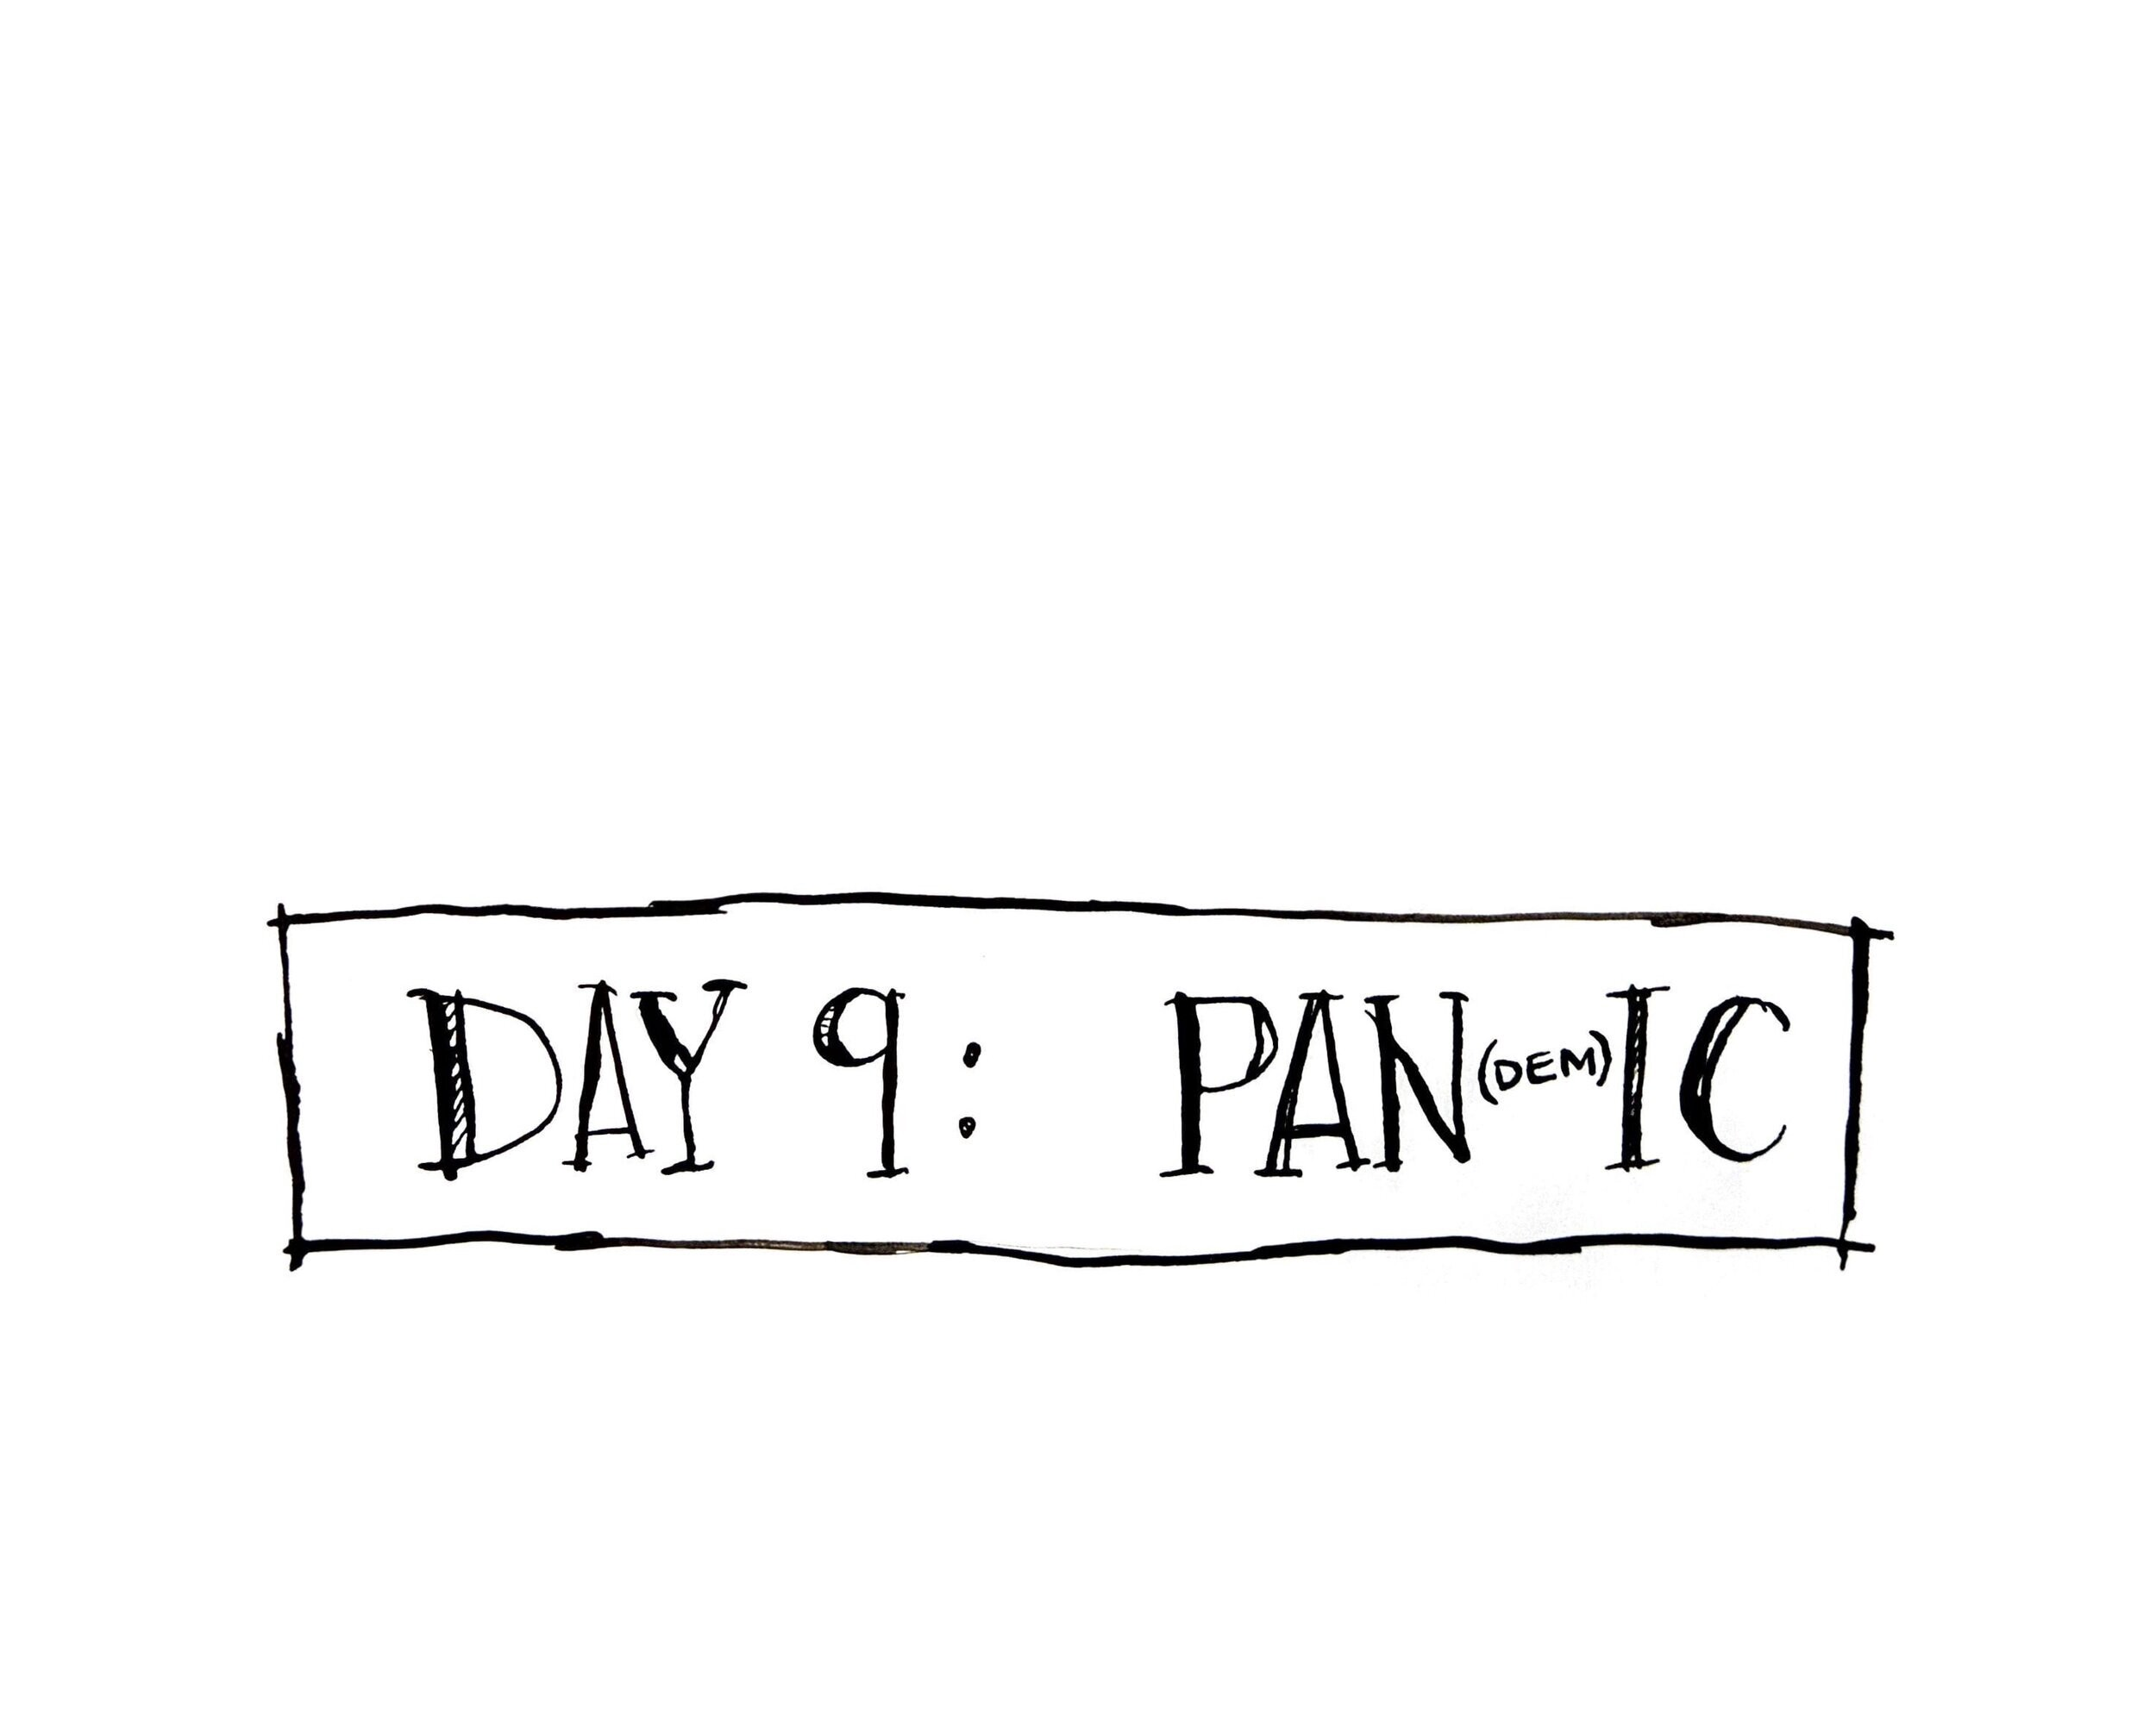 Day 9: Pan(dem)ic